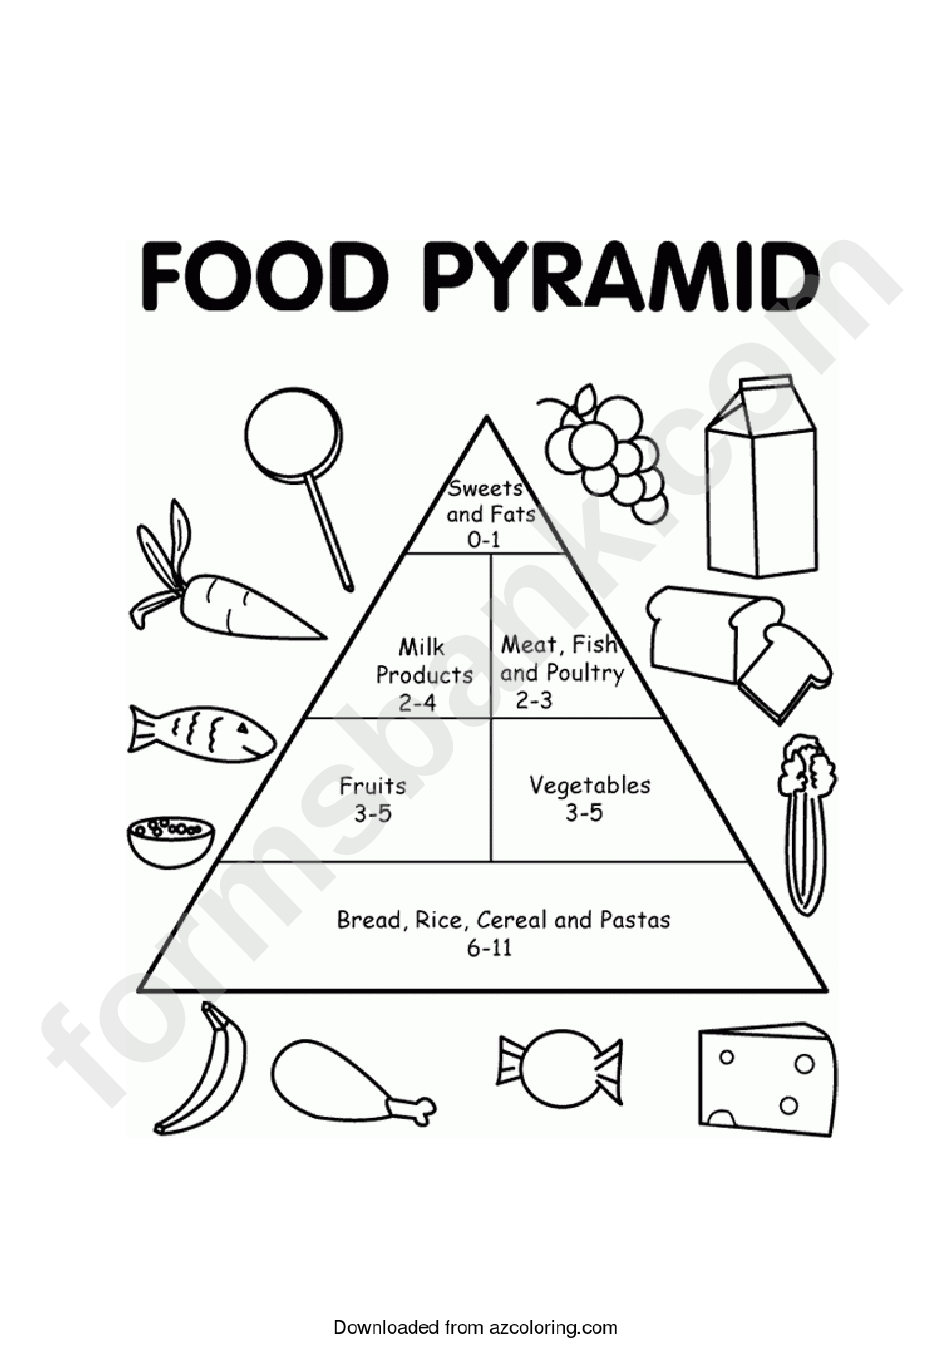 Food Pyramid Chart printable pdf download